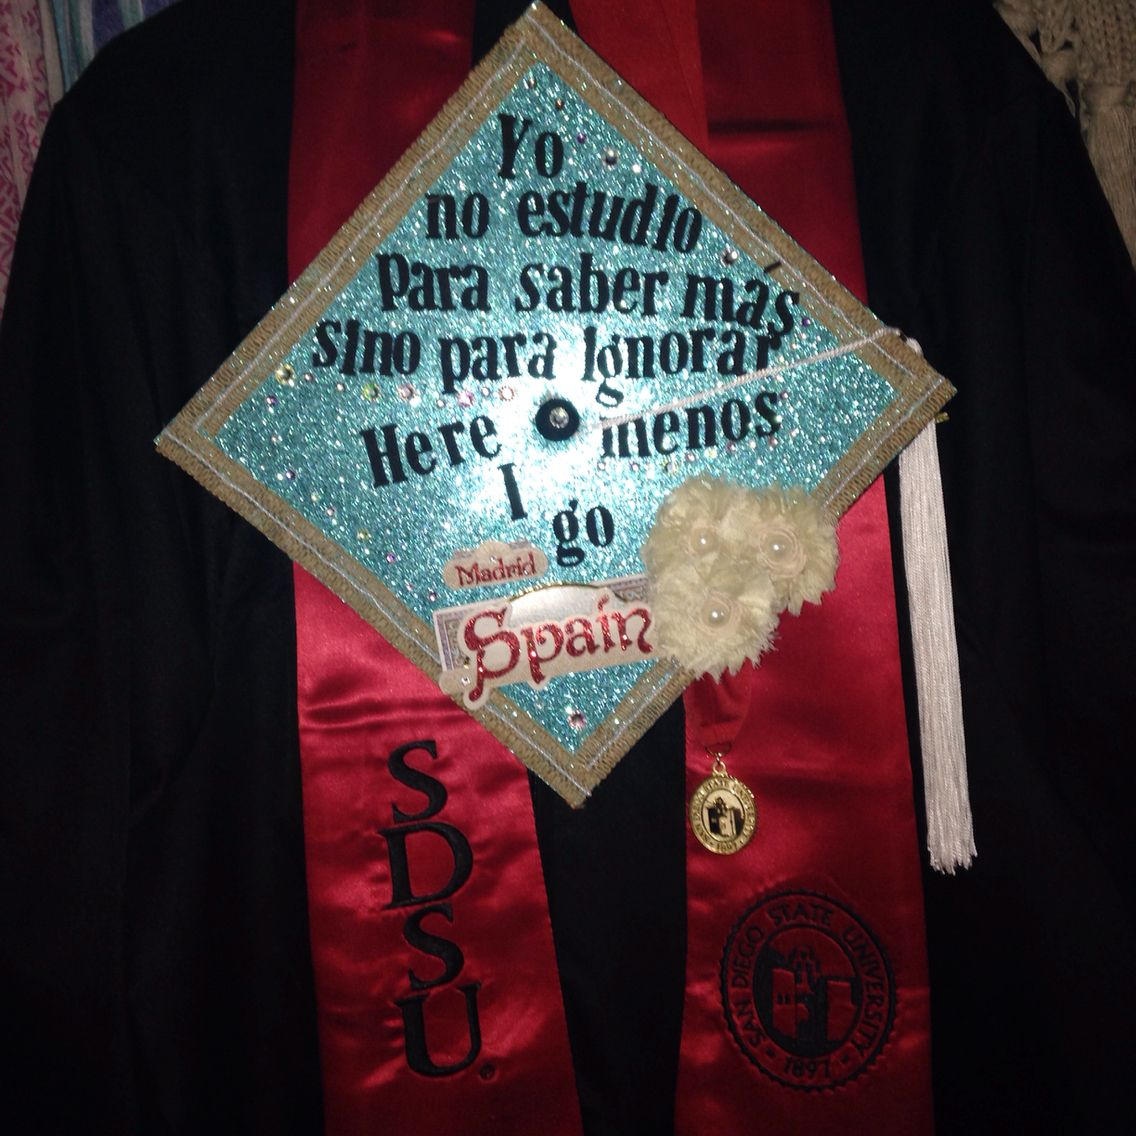 Decorating graduation cap ideas for teachers - Graduation Cap I Decided To Decorate My Cap Inspired By My Major Which Is Spanish